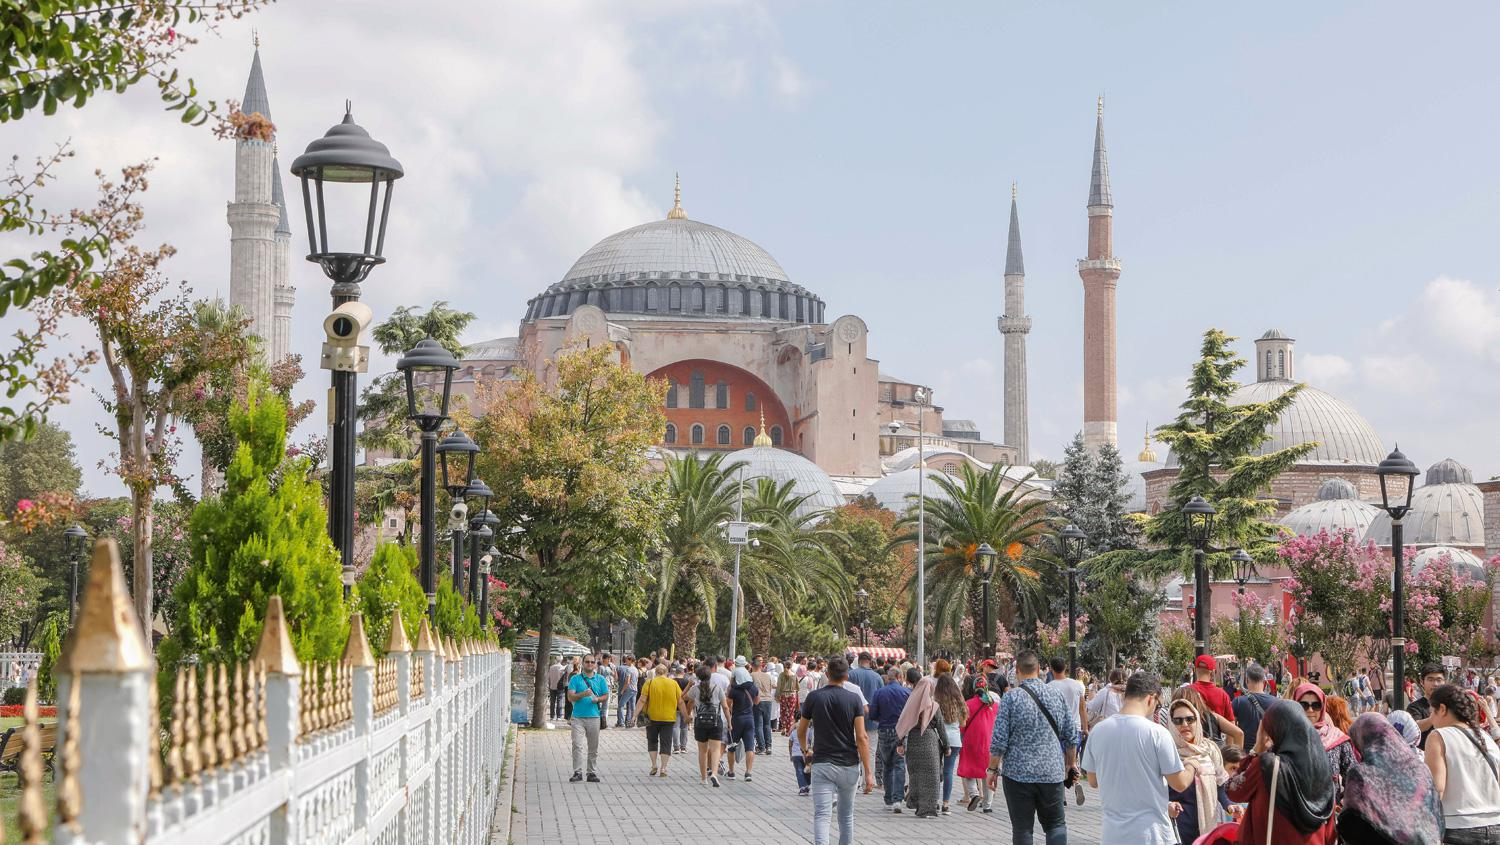 Workshop participants, including 32 German travel agents, toured Istanbul's highlights, such as the world-famous Hagia Sophia.